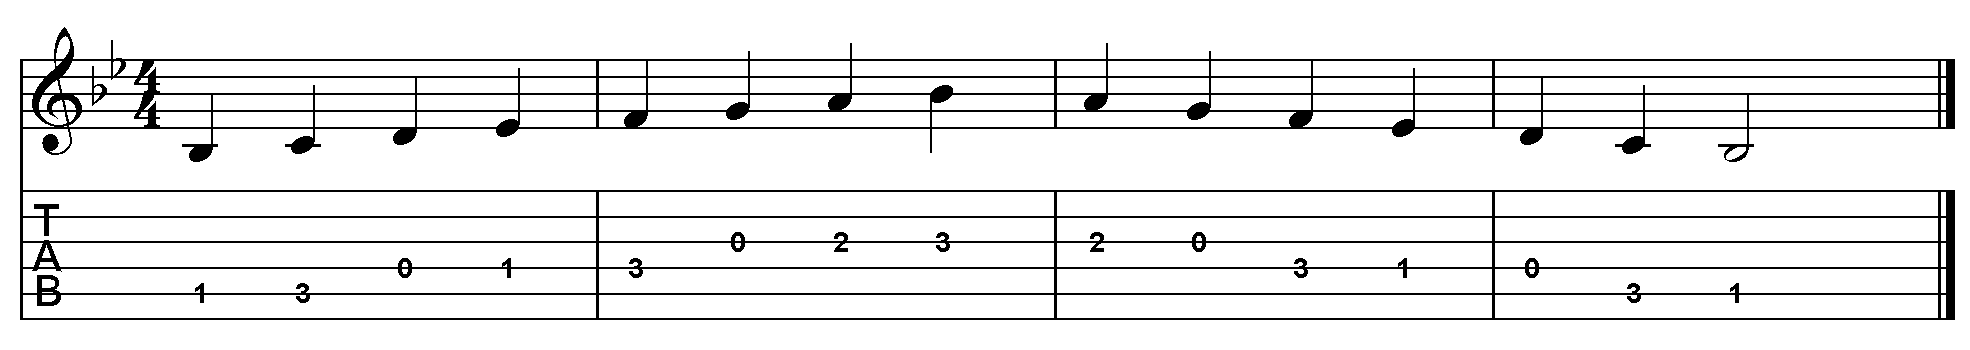 File:B flat major scale one octave (open position).png ... C Flat Major Scale